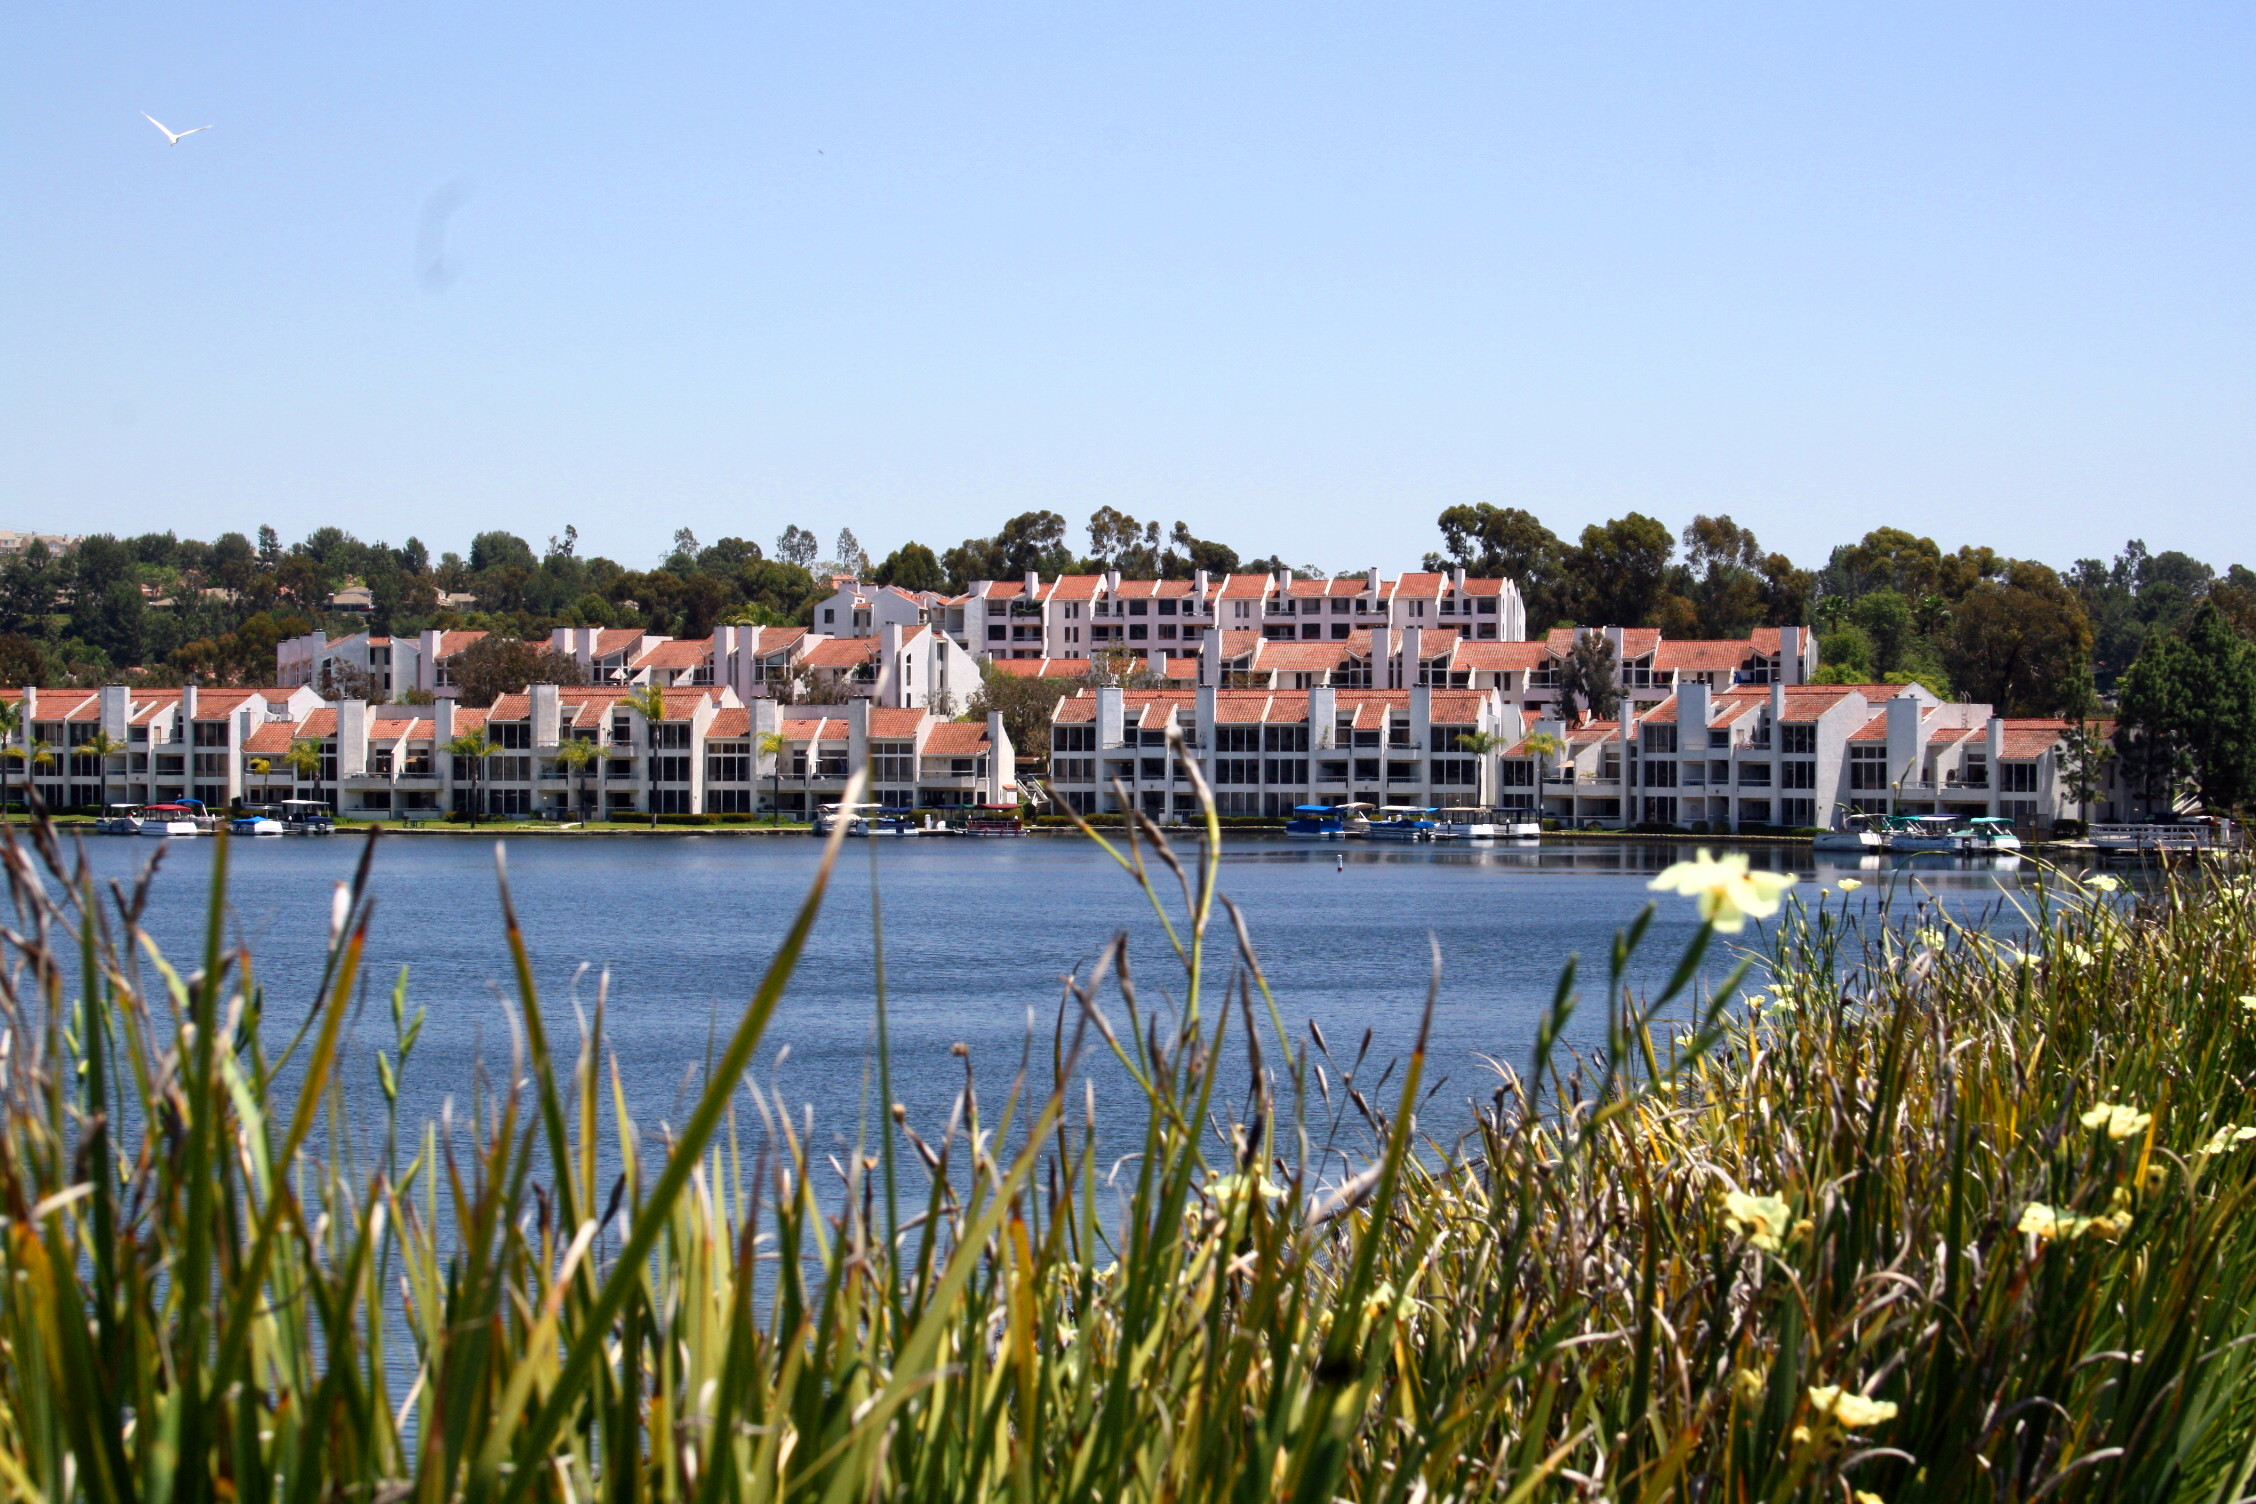 Finisterra Condos by the Lake in Mission Viejo